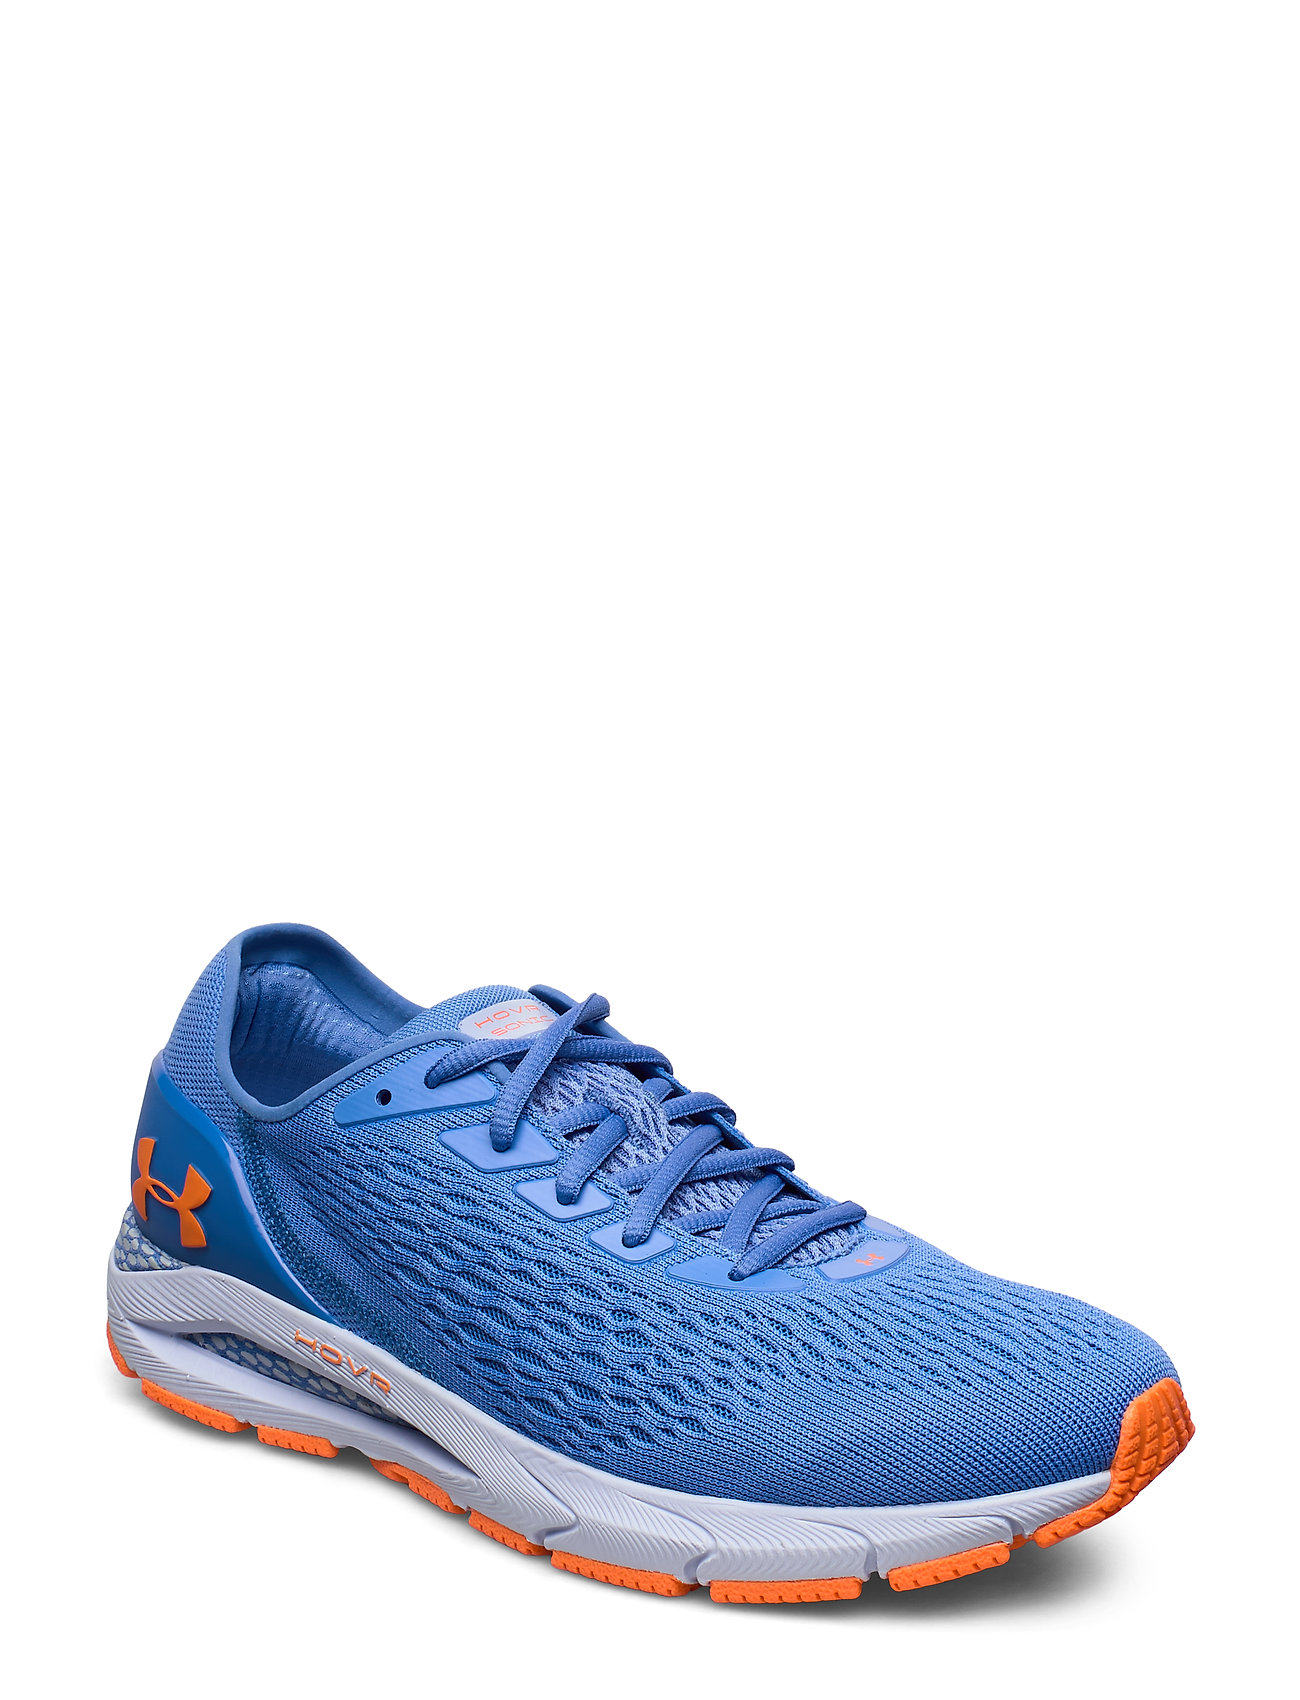 Under Armour Ua Hovr Sonic 3 Shoes Sport Shoes Running Shoes Blå Under Armour